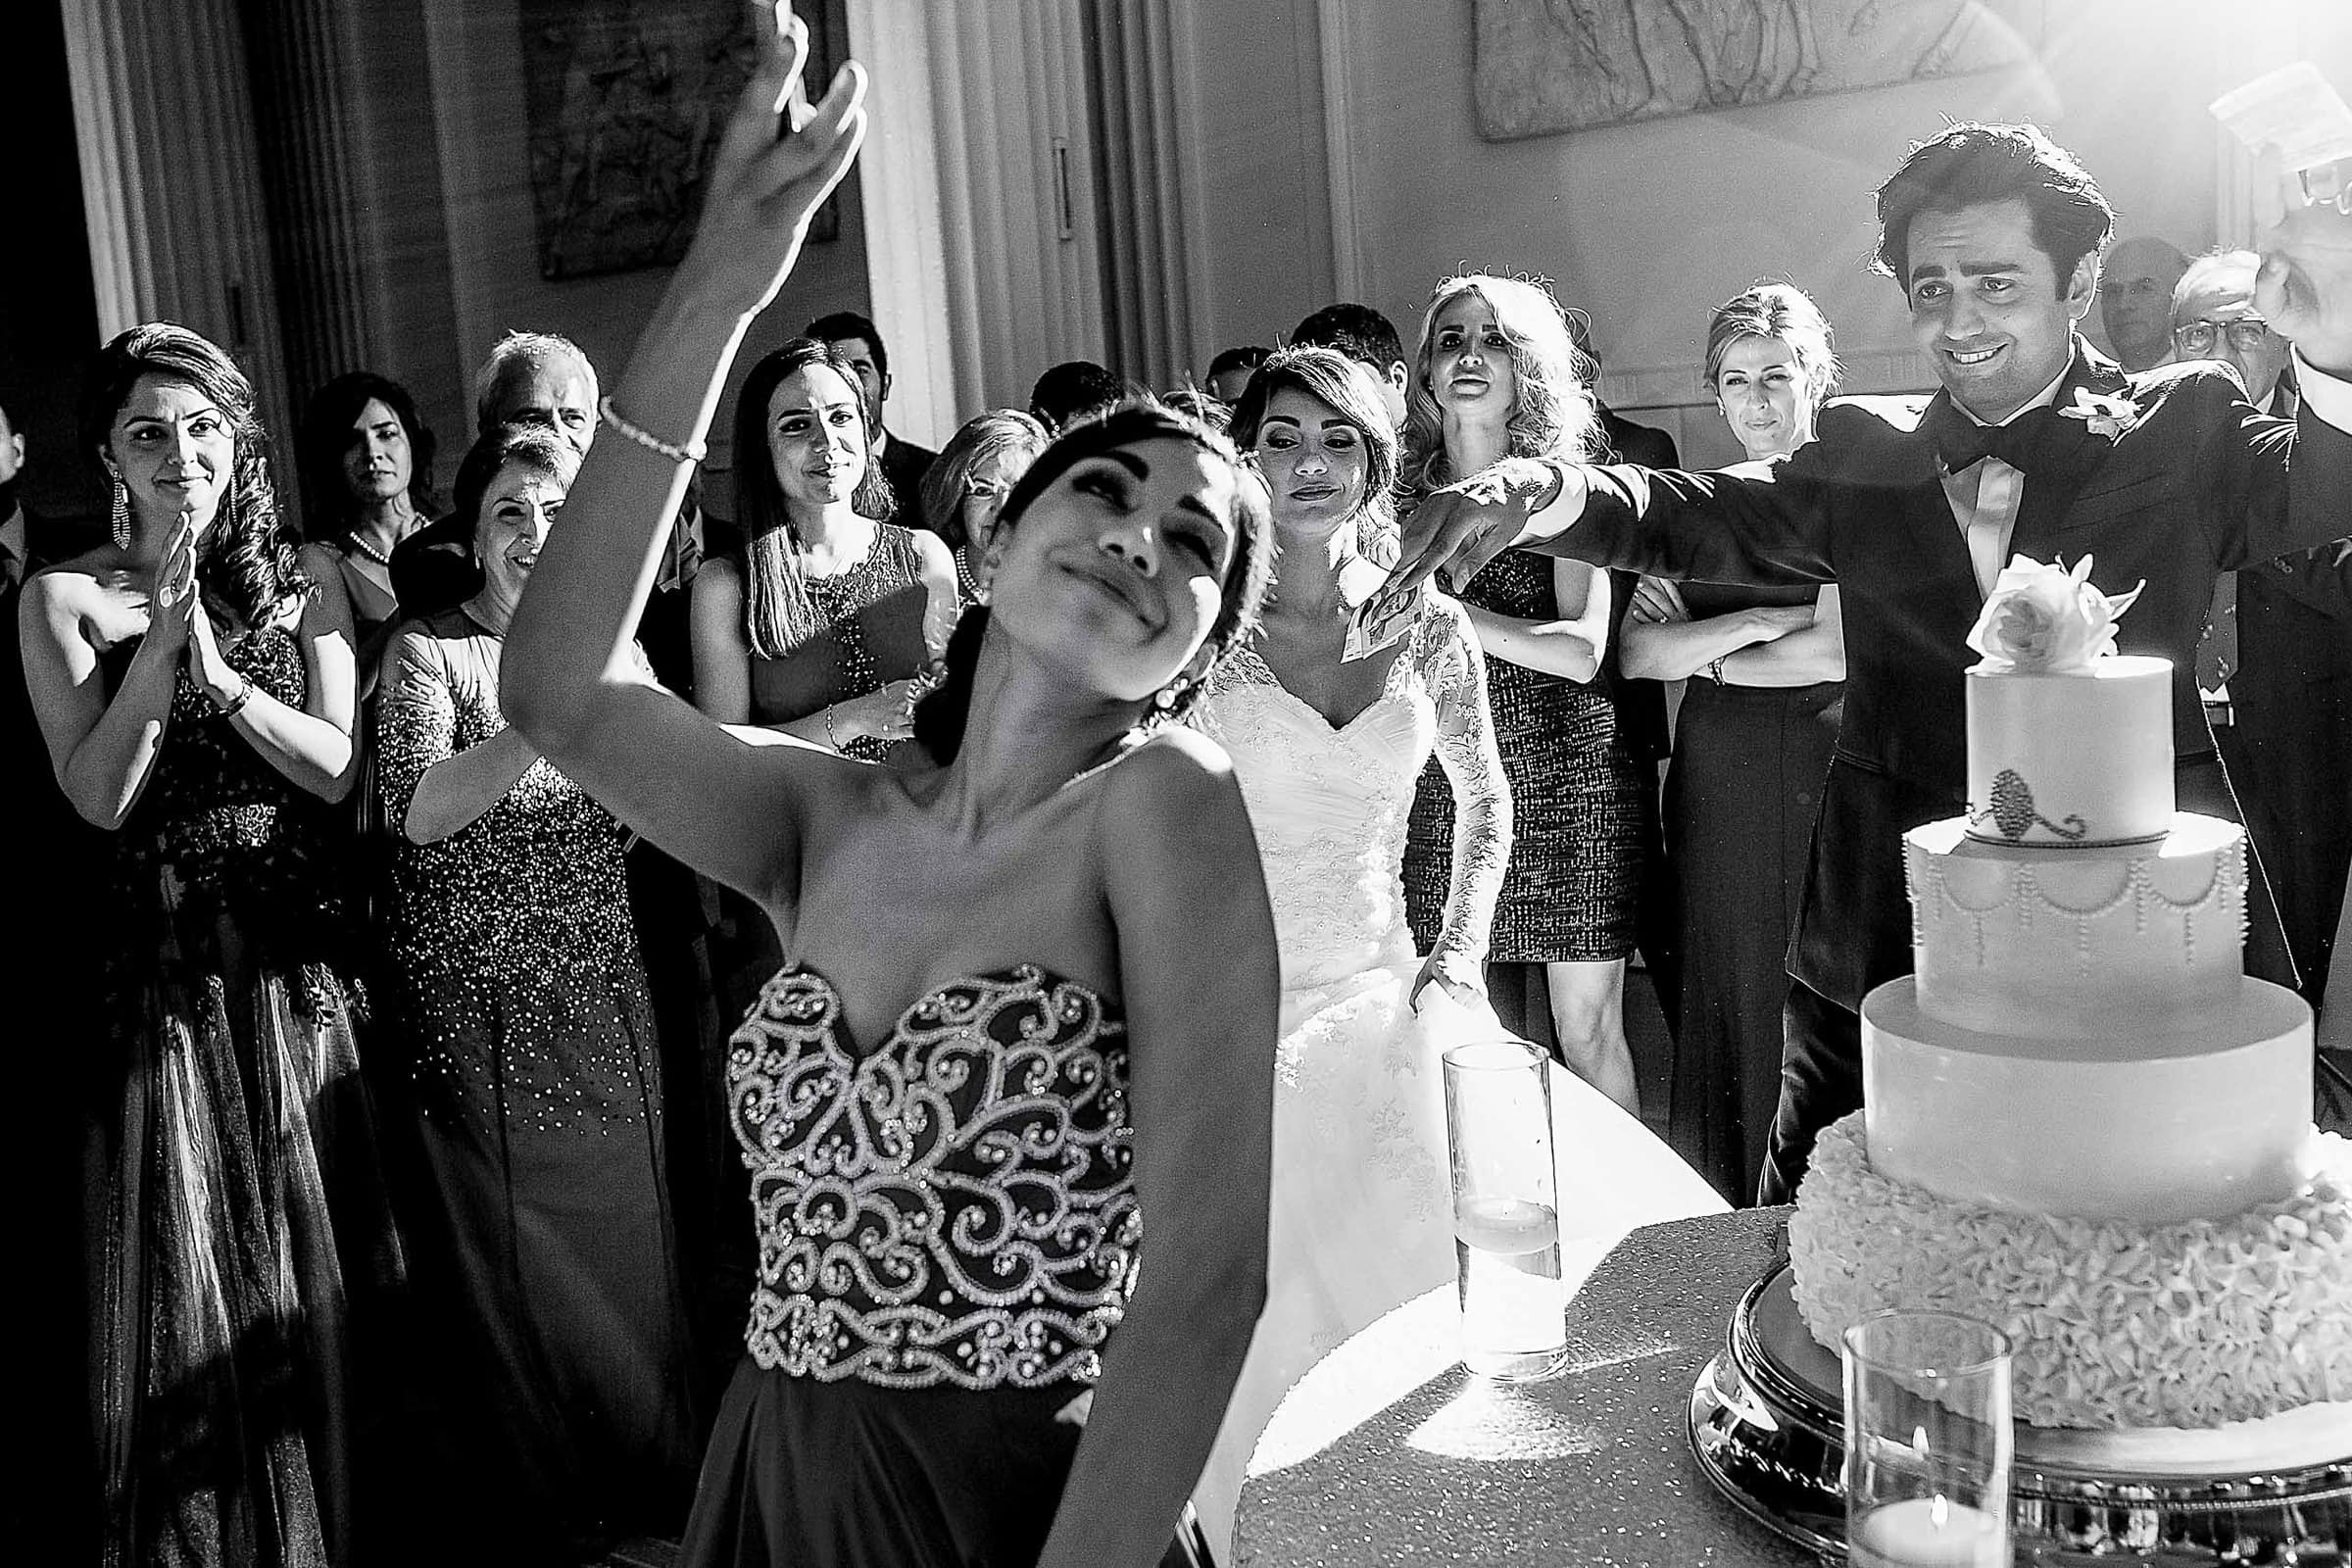 The sister of the bride doing a Persian knife dance near the cake to the groom during a Portland Persian wedding at the Portland Art Museum